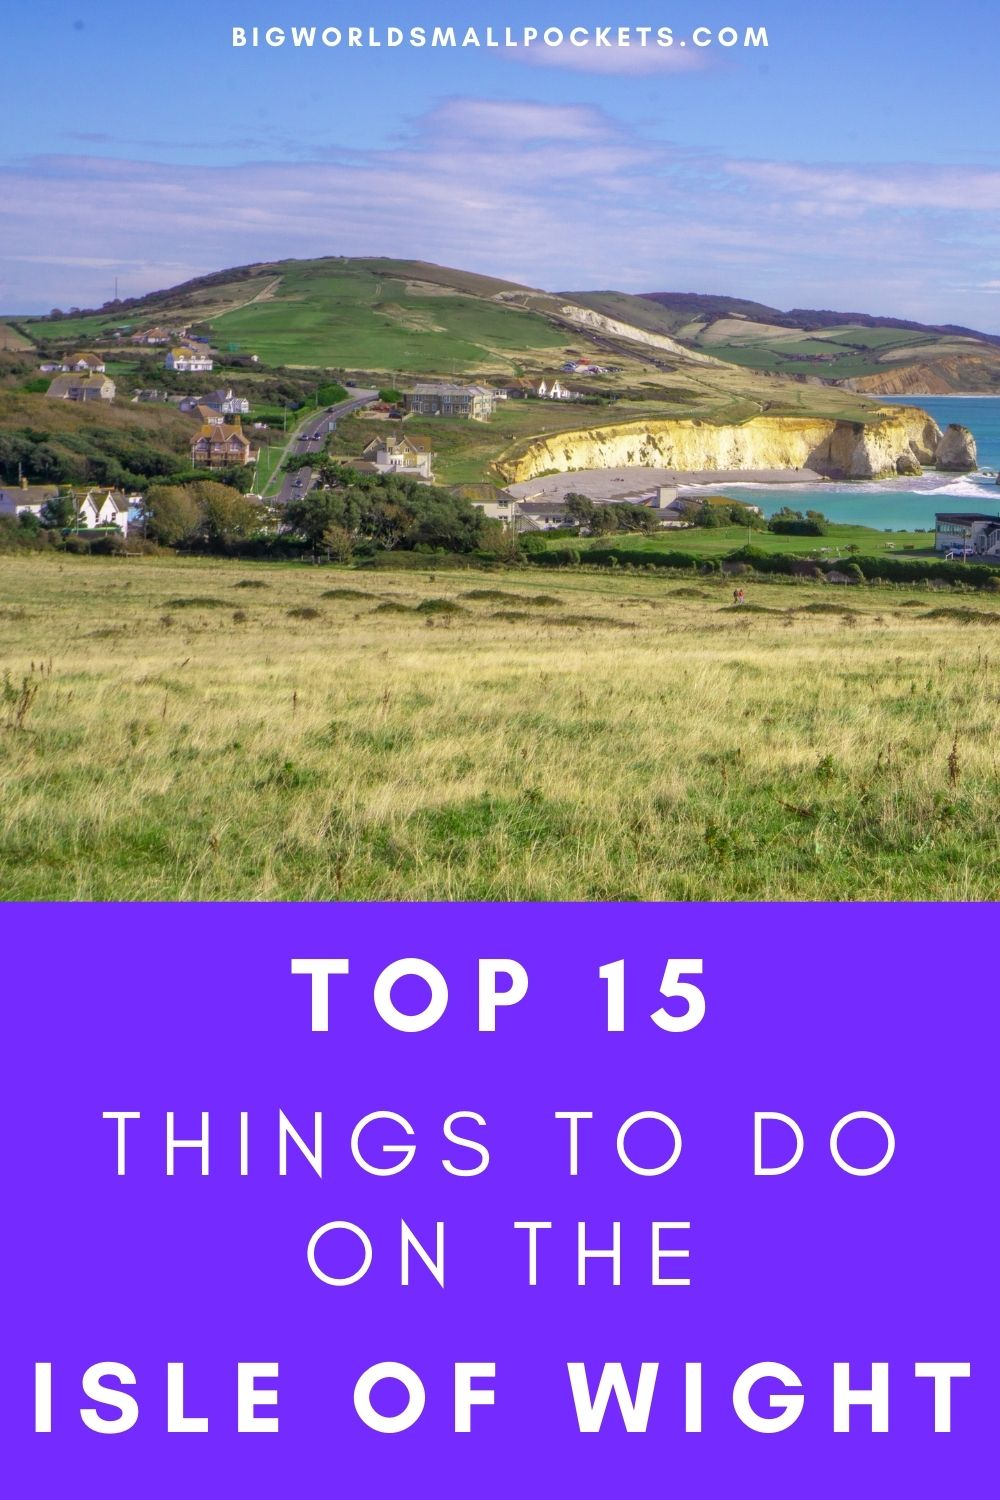 15 Best Things To Do on the Isle of Wight, England